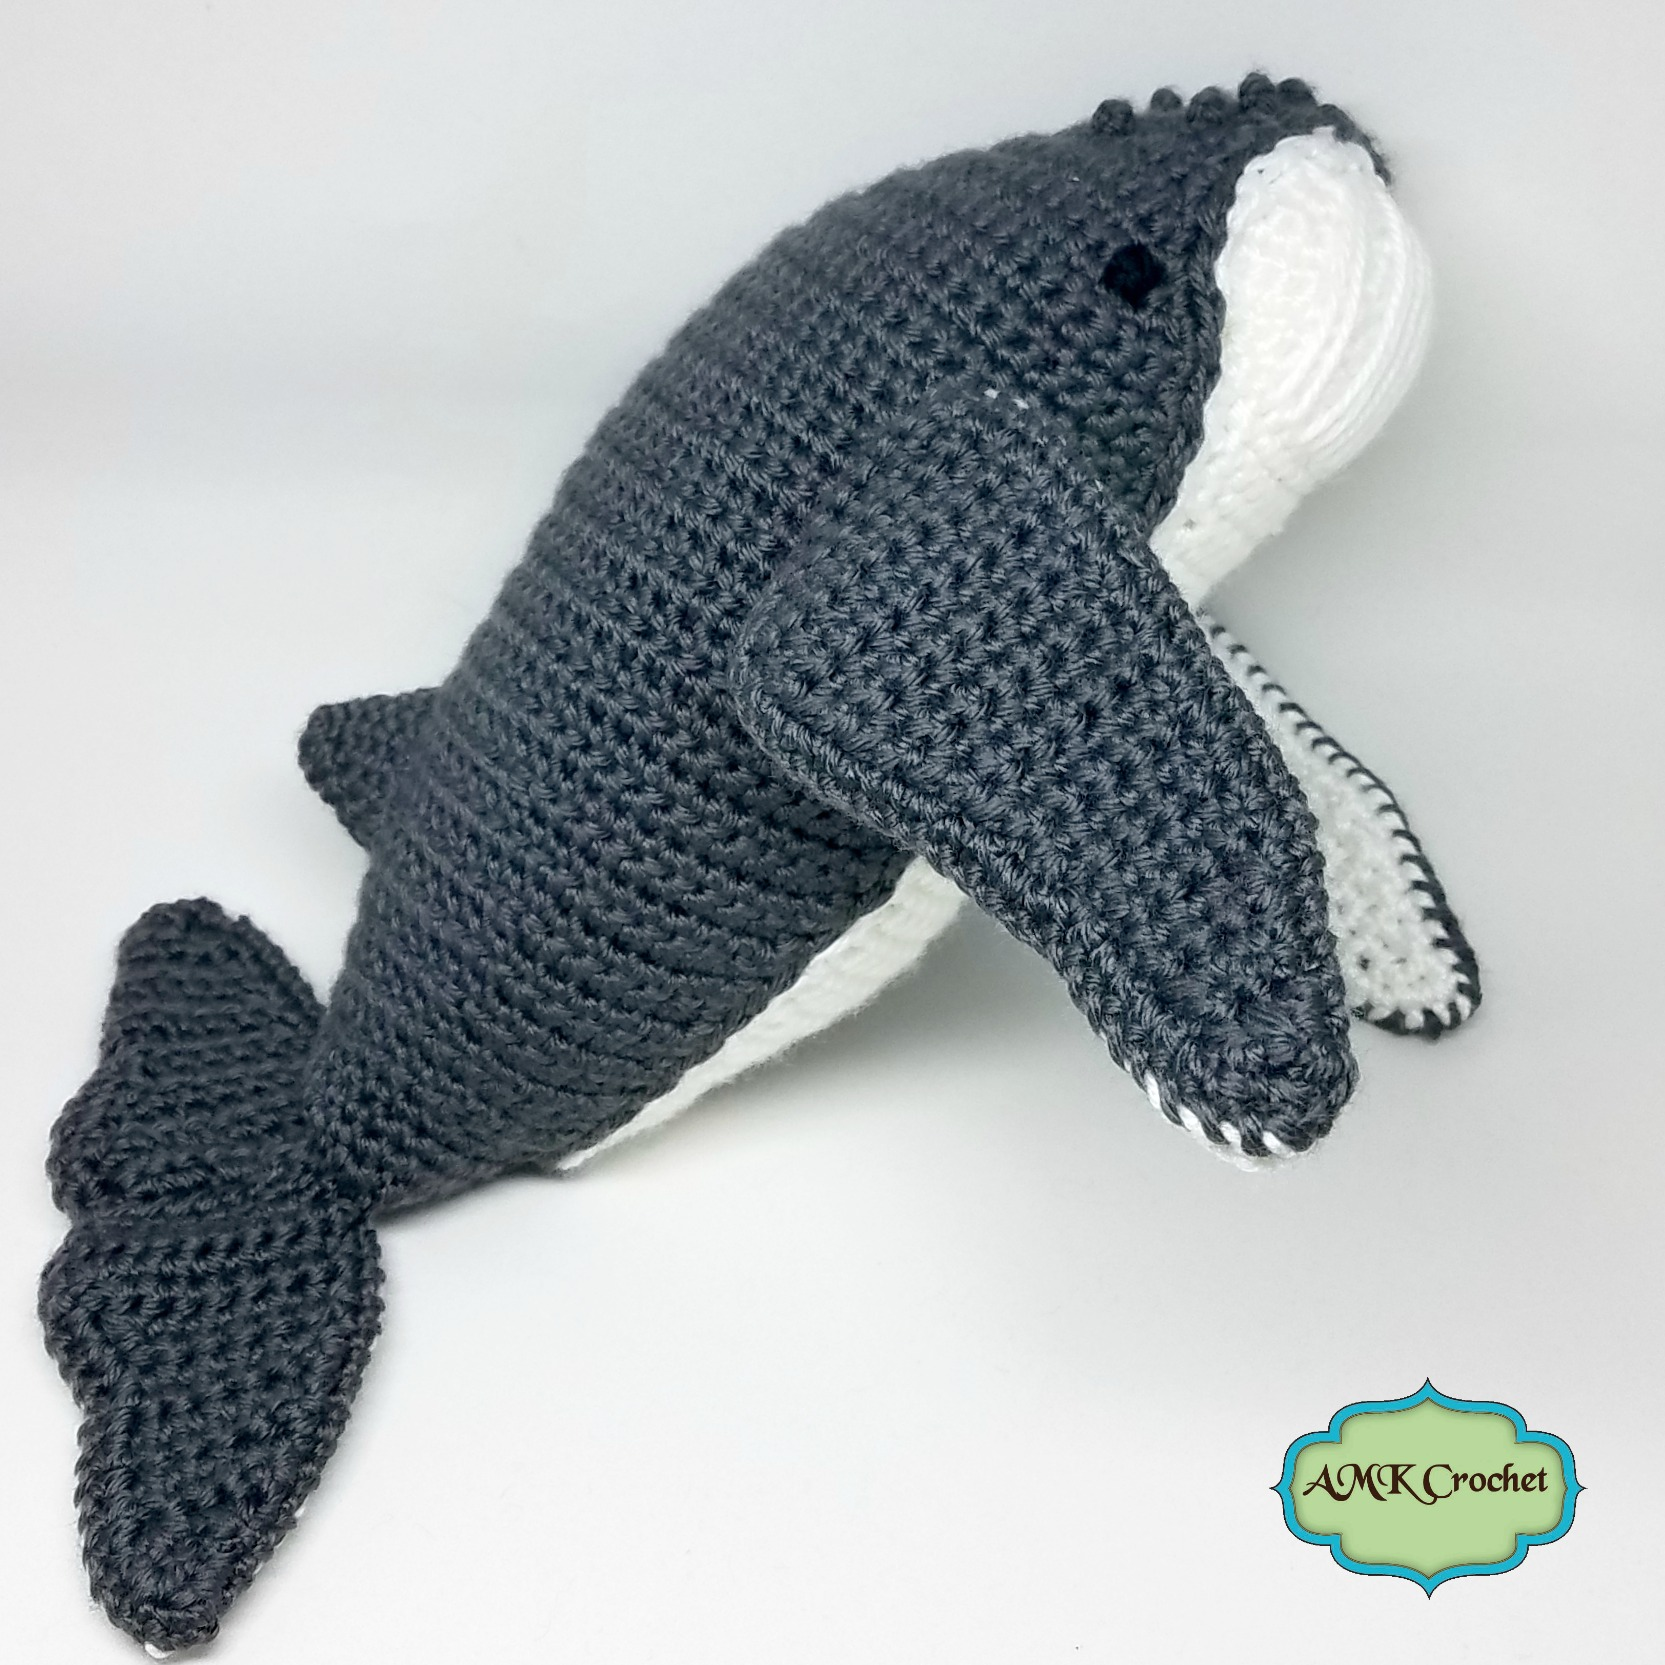 Crochet Humpback Whale Plush Toy Pattern, Humpback Amigurumi Stuffed ...